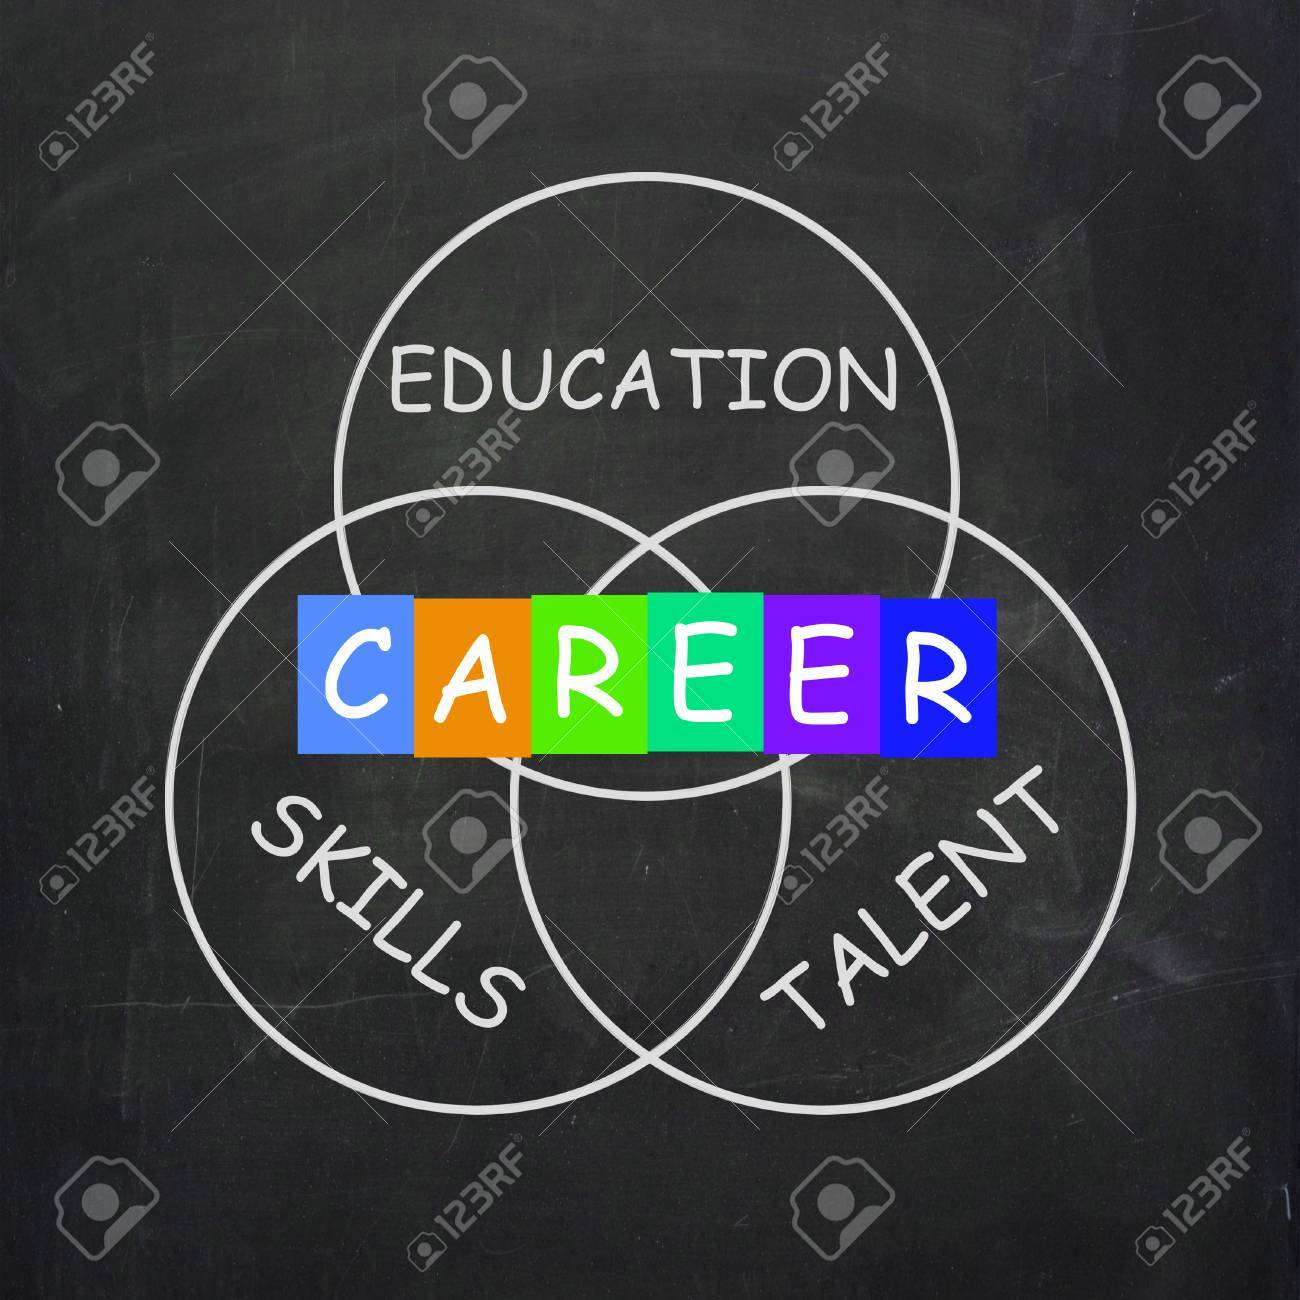 career advice showing education talent and skills stock photo career advice showing education talent and skills stock photo 27899707